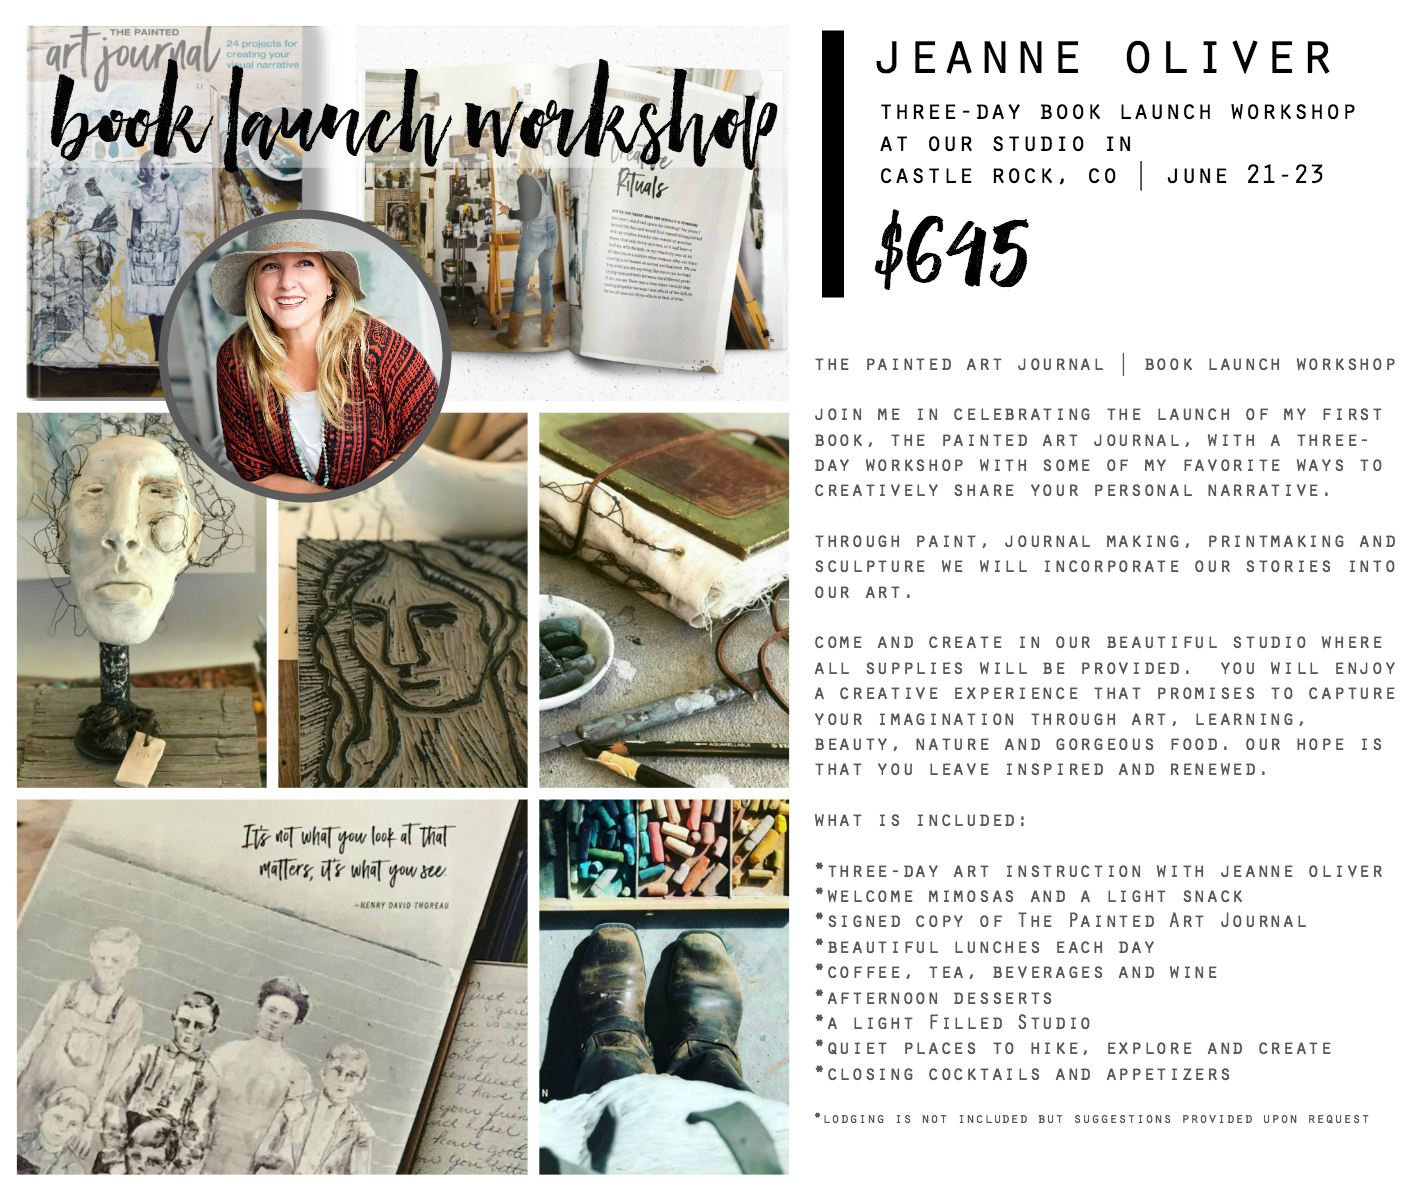 The Painted Art Journal Workshop with Jeanne Oliver